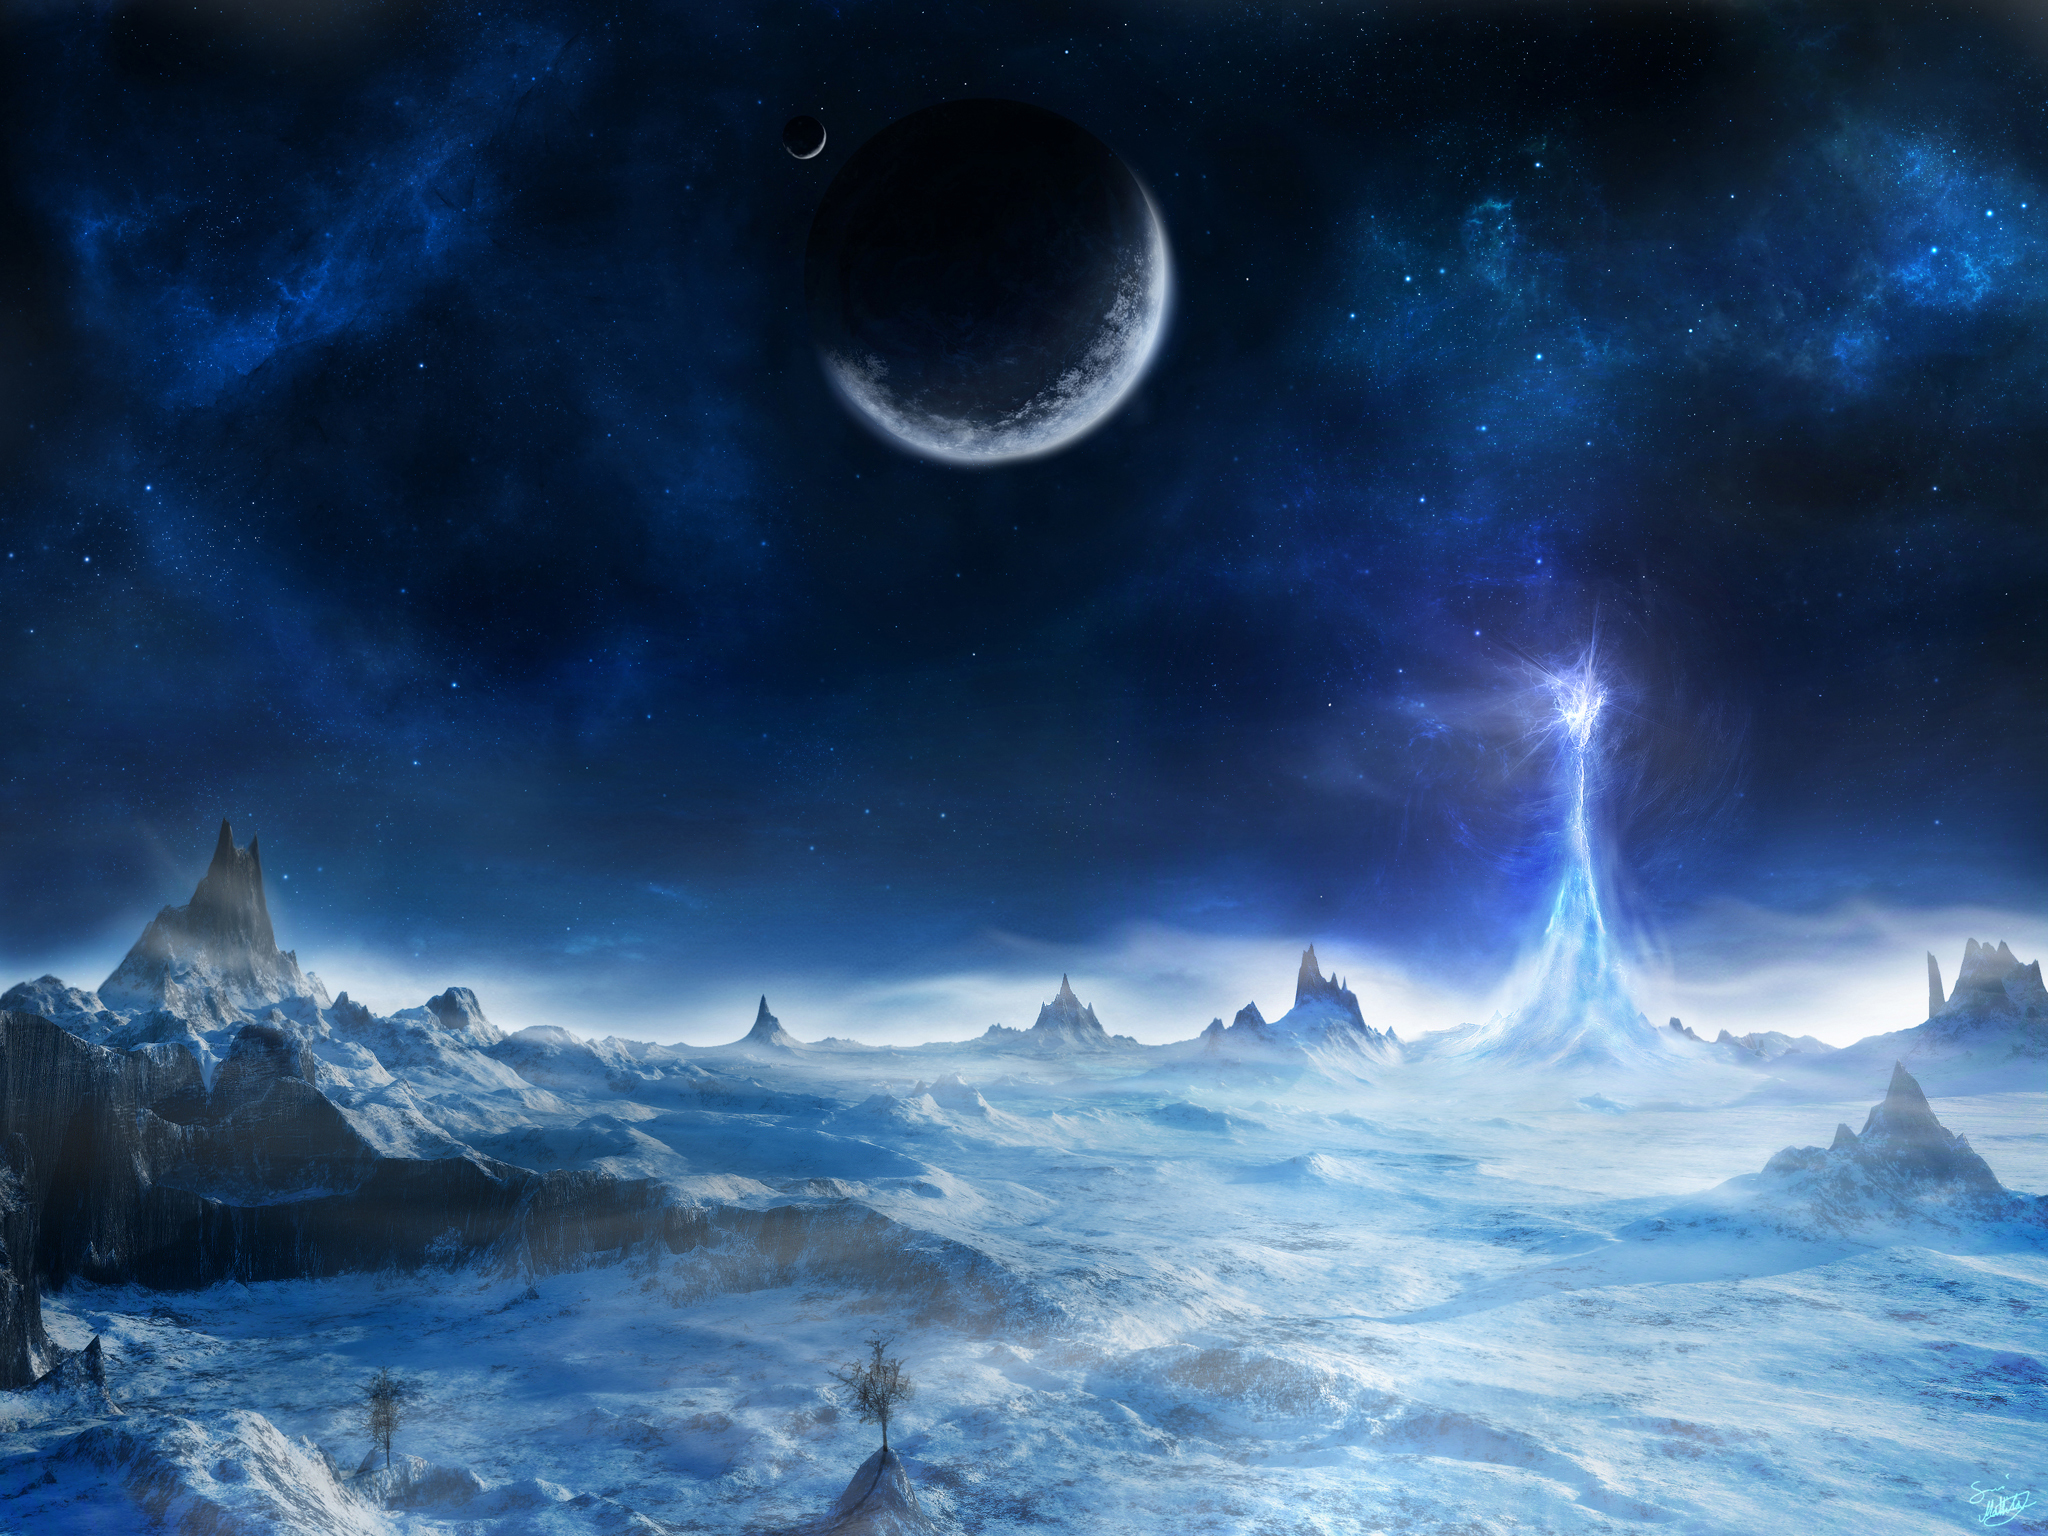 Image: planet, energy, ice, surface, mountains, winter, snow, sky, space, stars